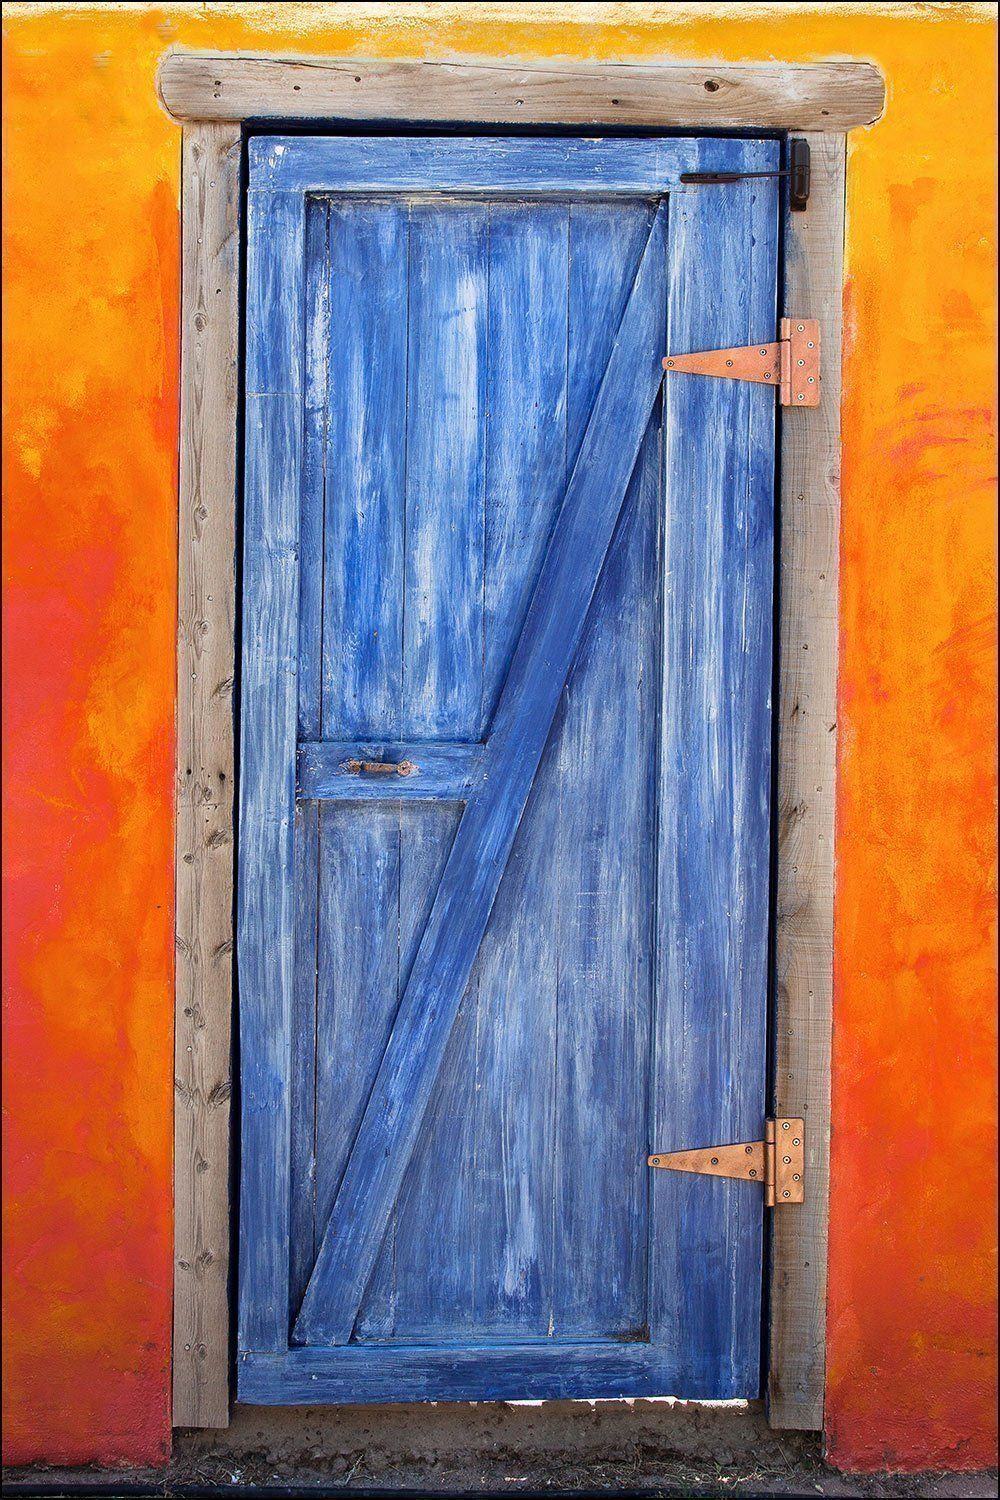 Photograph of very colorful american southwest blue wood barn door